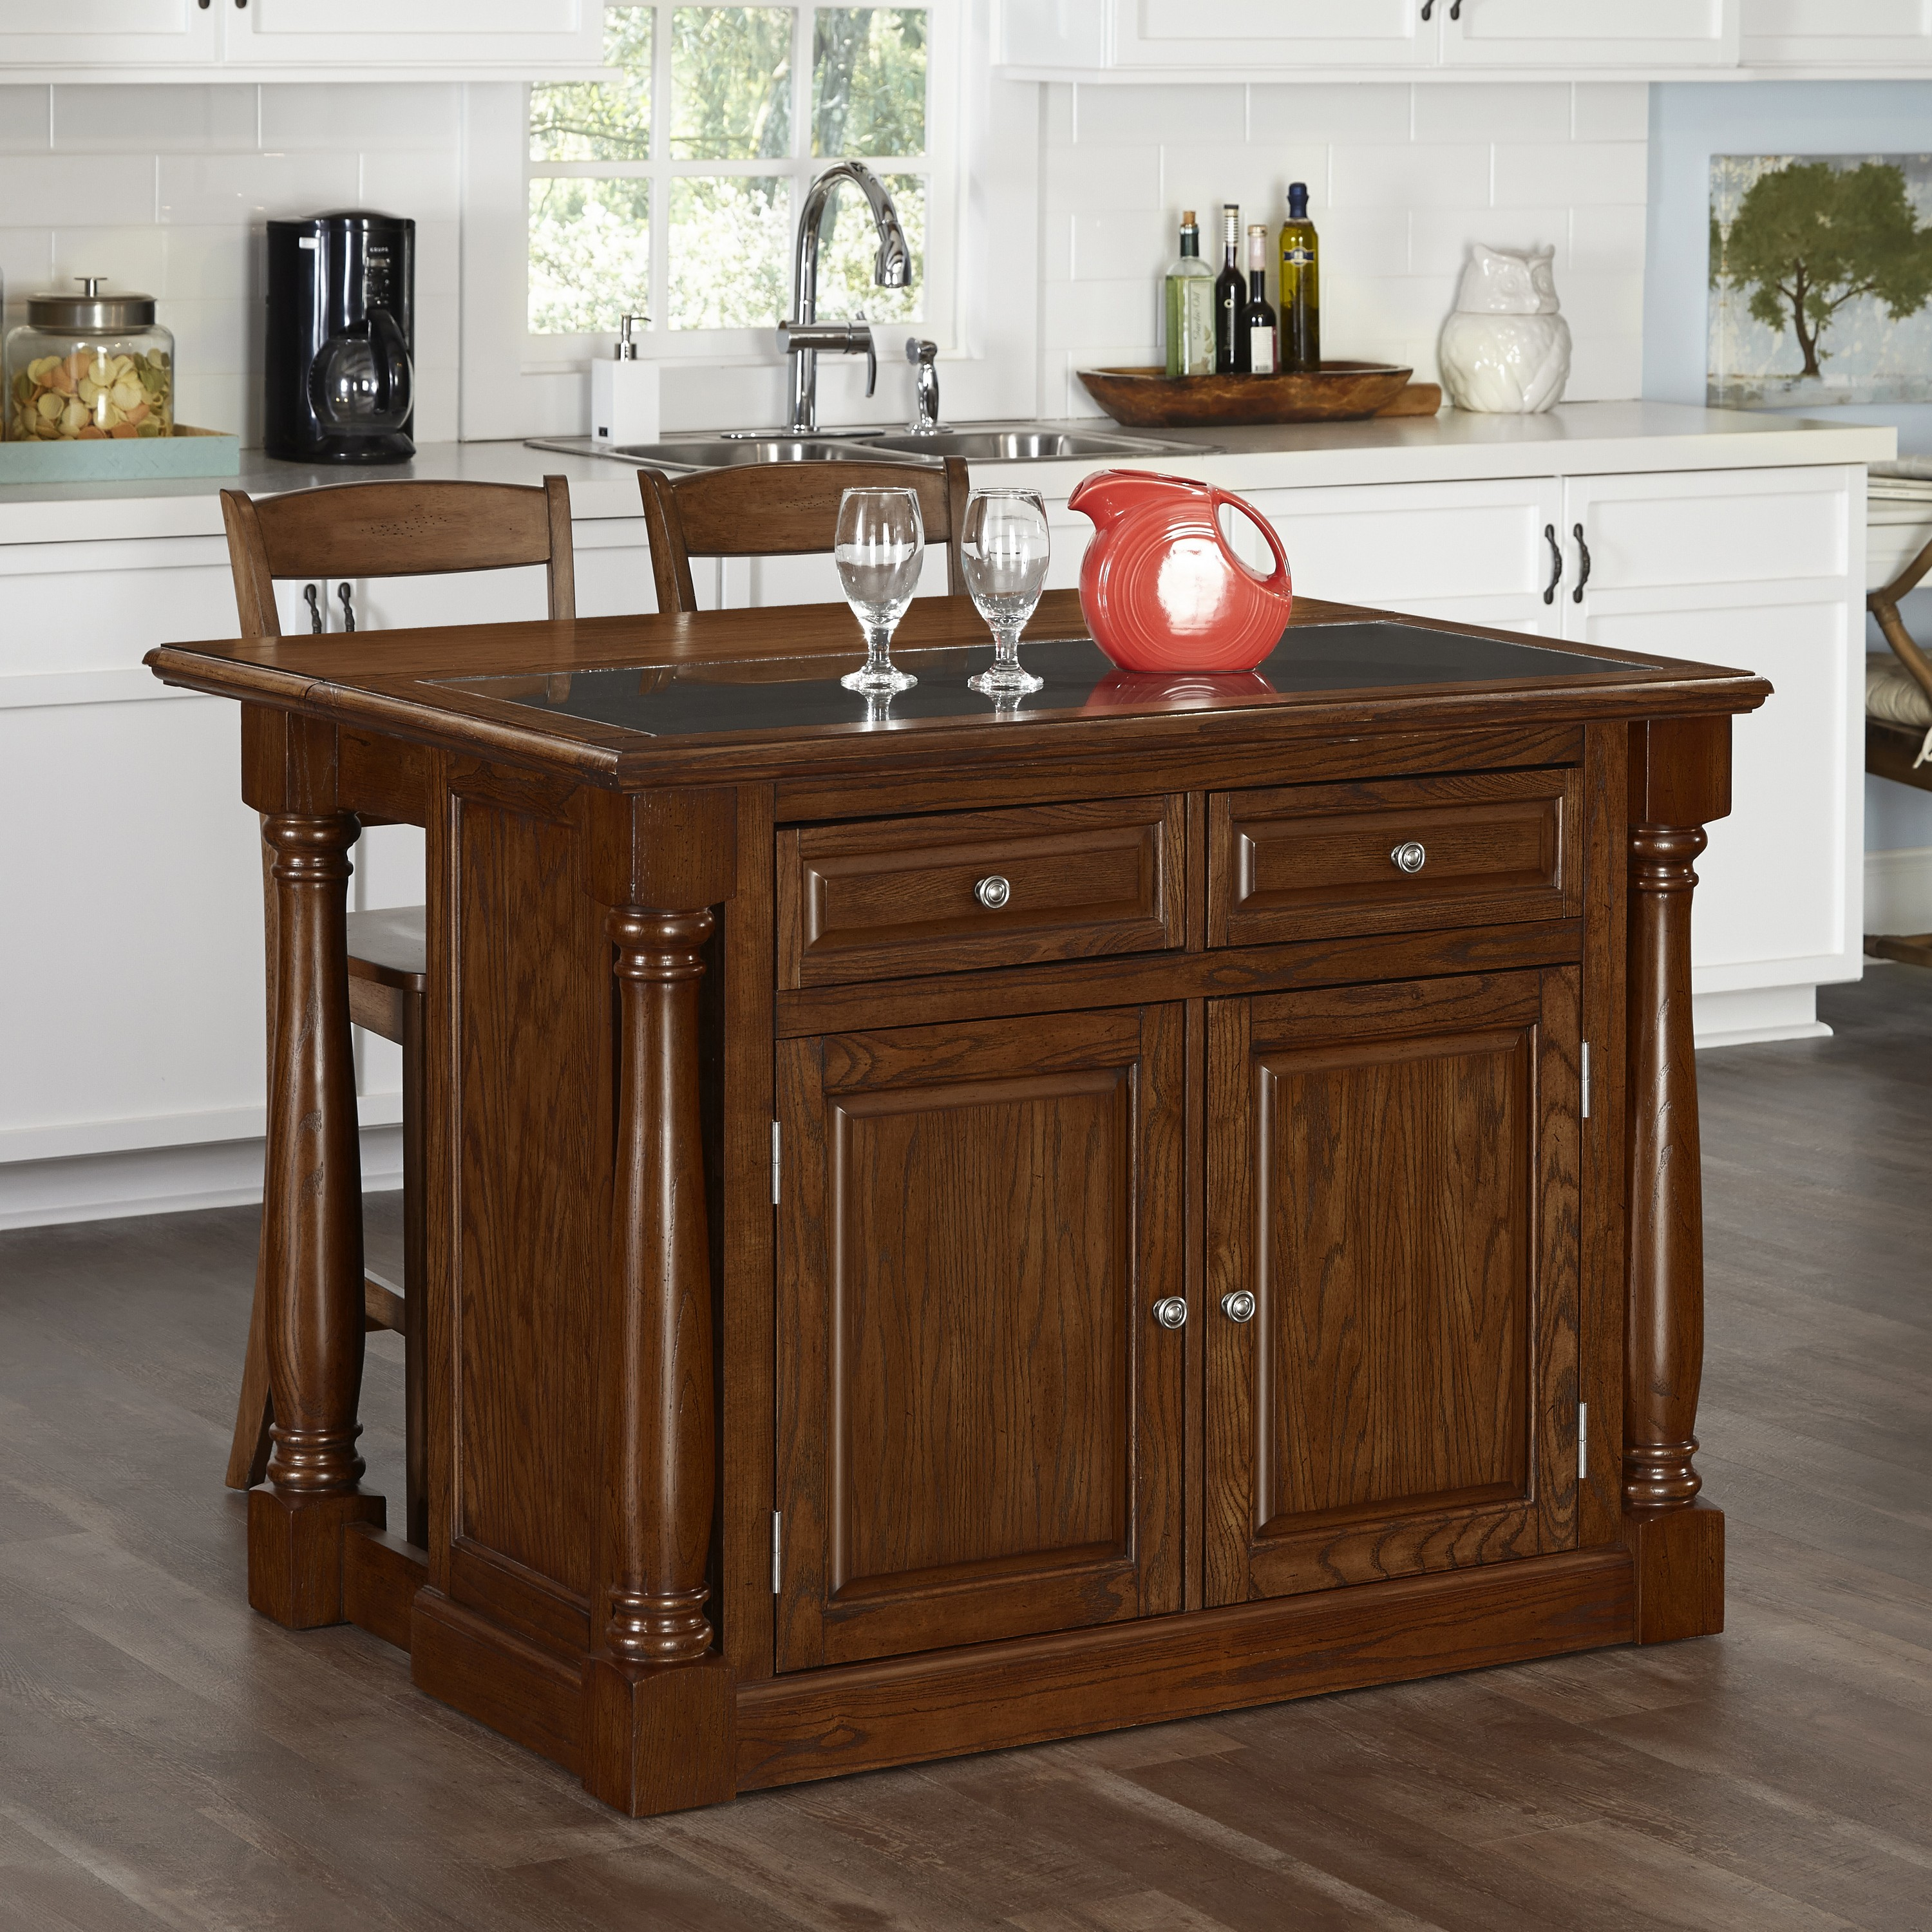 Stools Kitchen Islands Home Styles Monarch Oak Kitchen Island And Two Stools